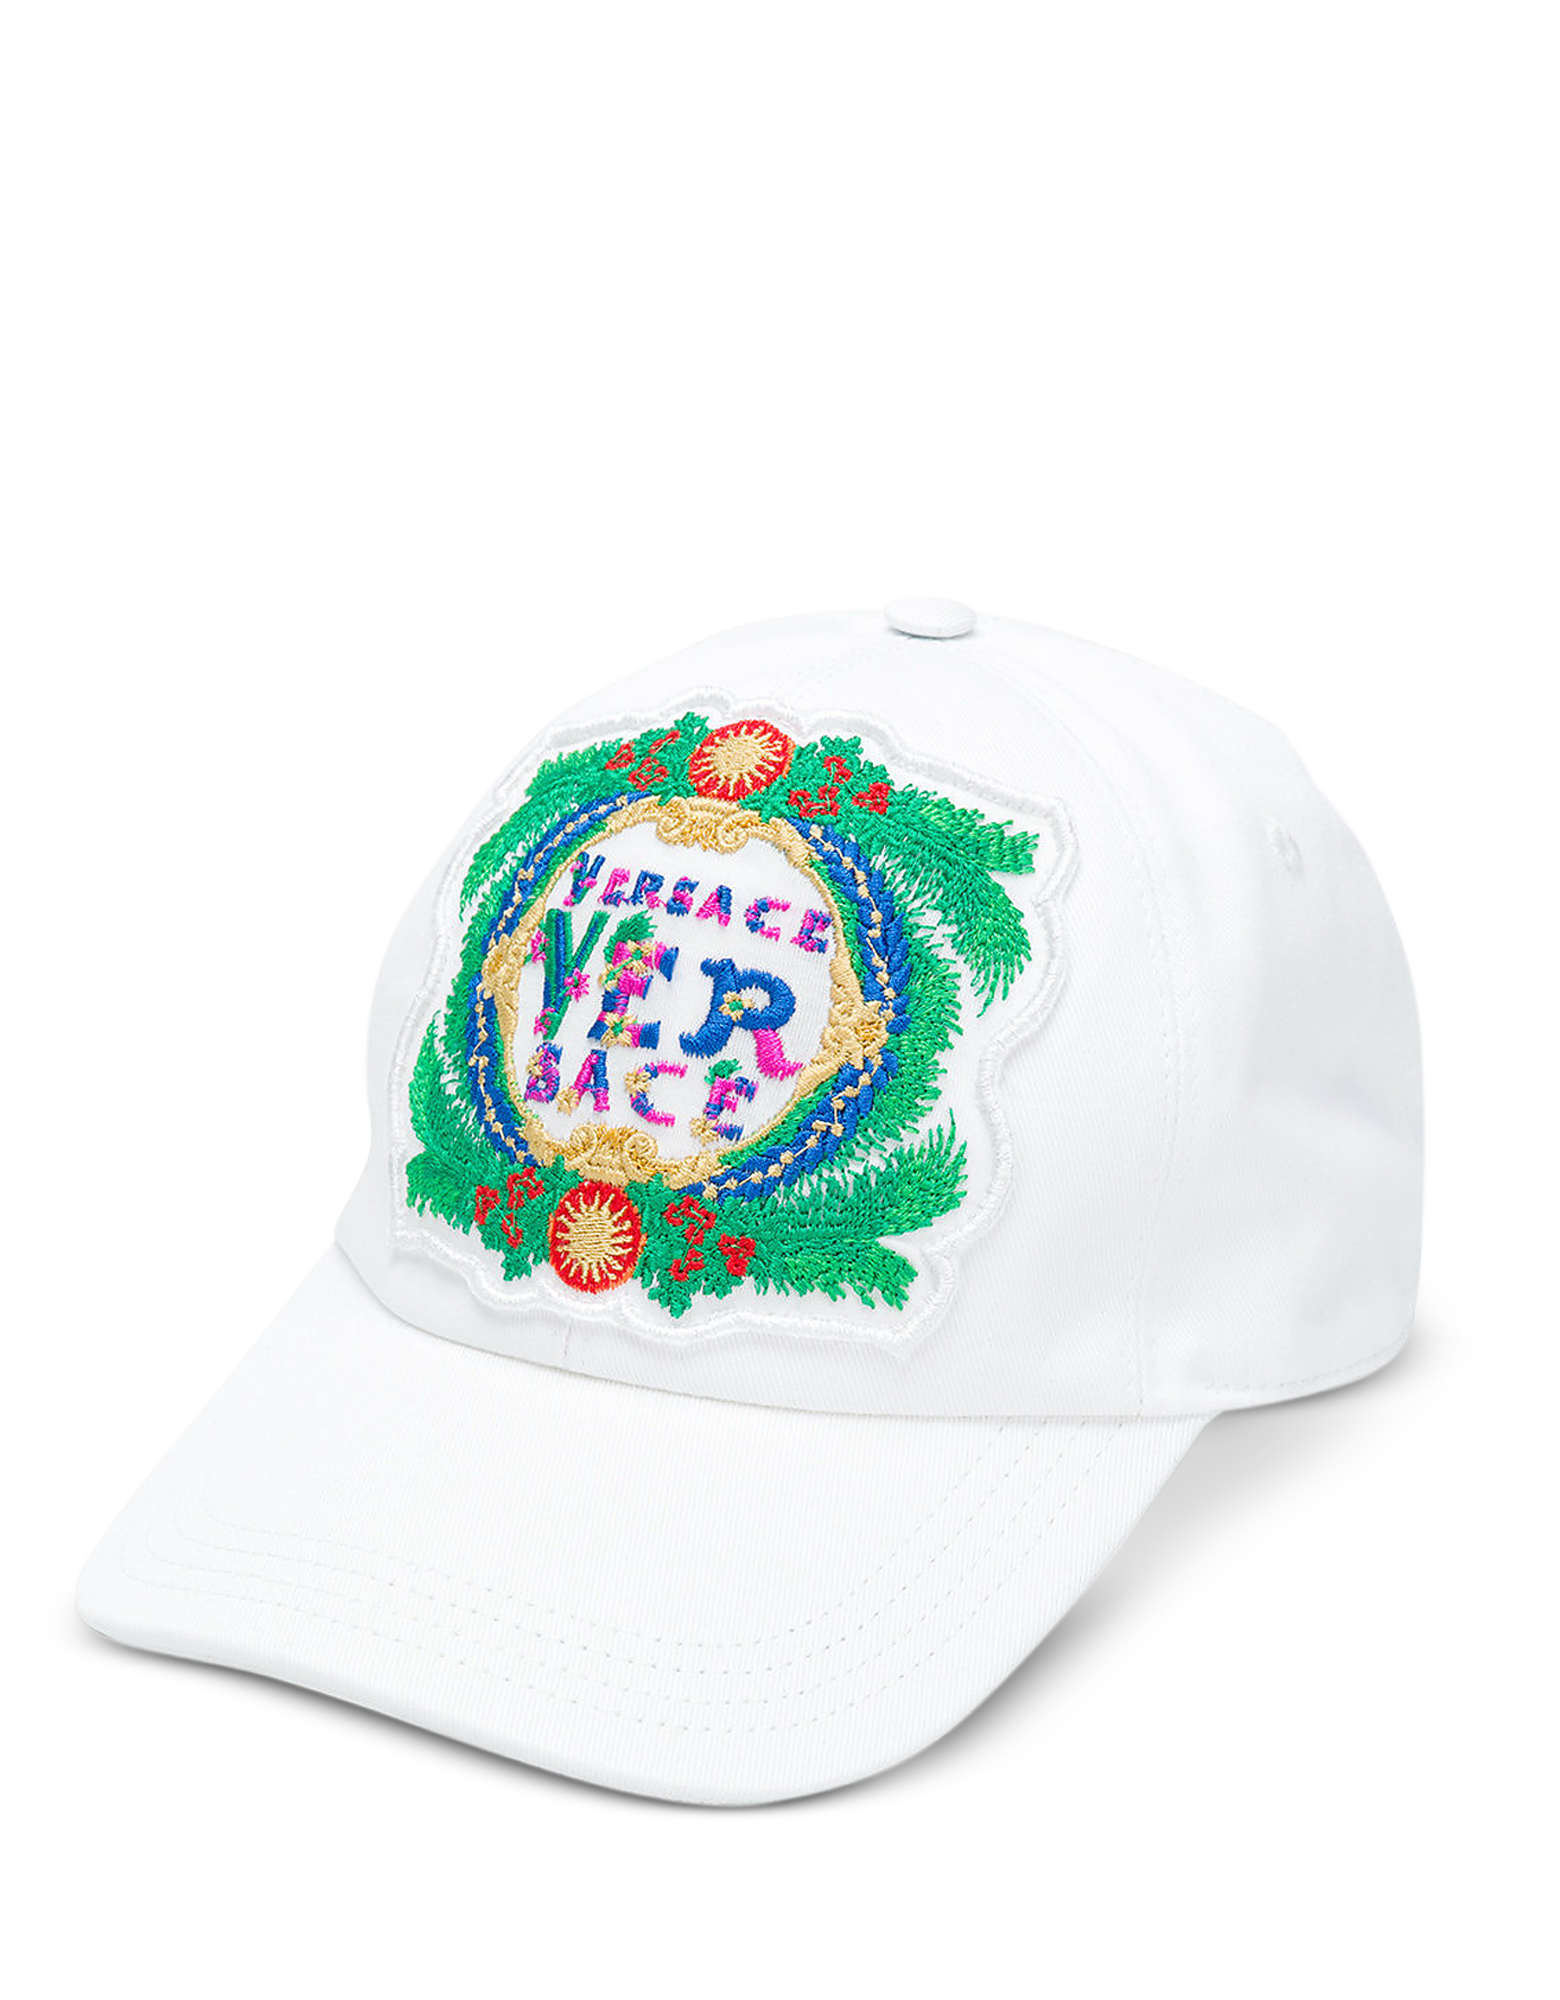 f55c629ae70b3e ON SALE: Versace - White Cotton Unisex Baseball Cap w/Beverly Palm  Embroidery